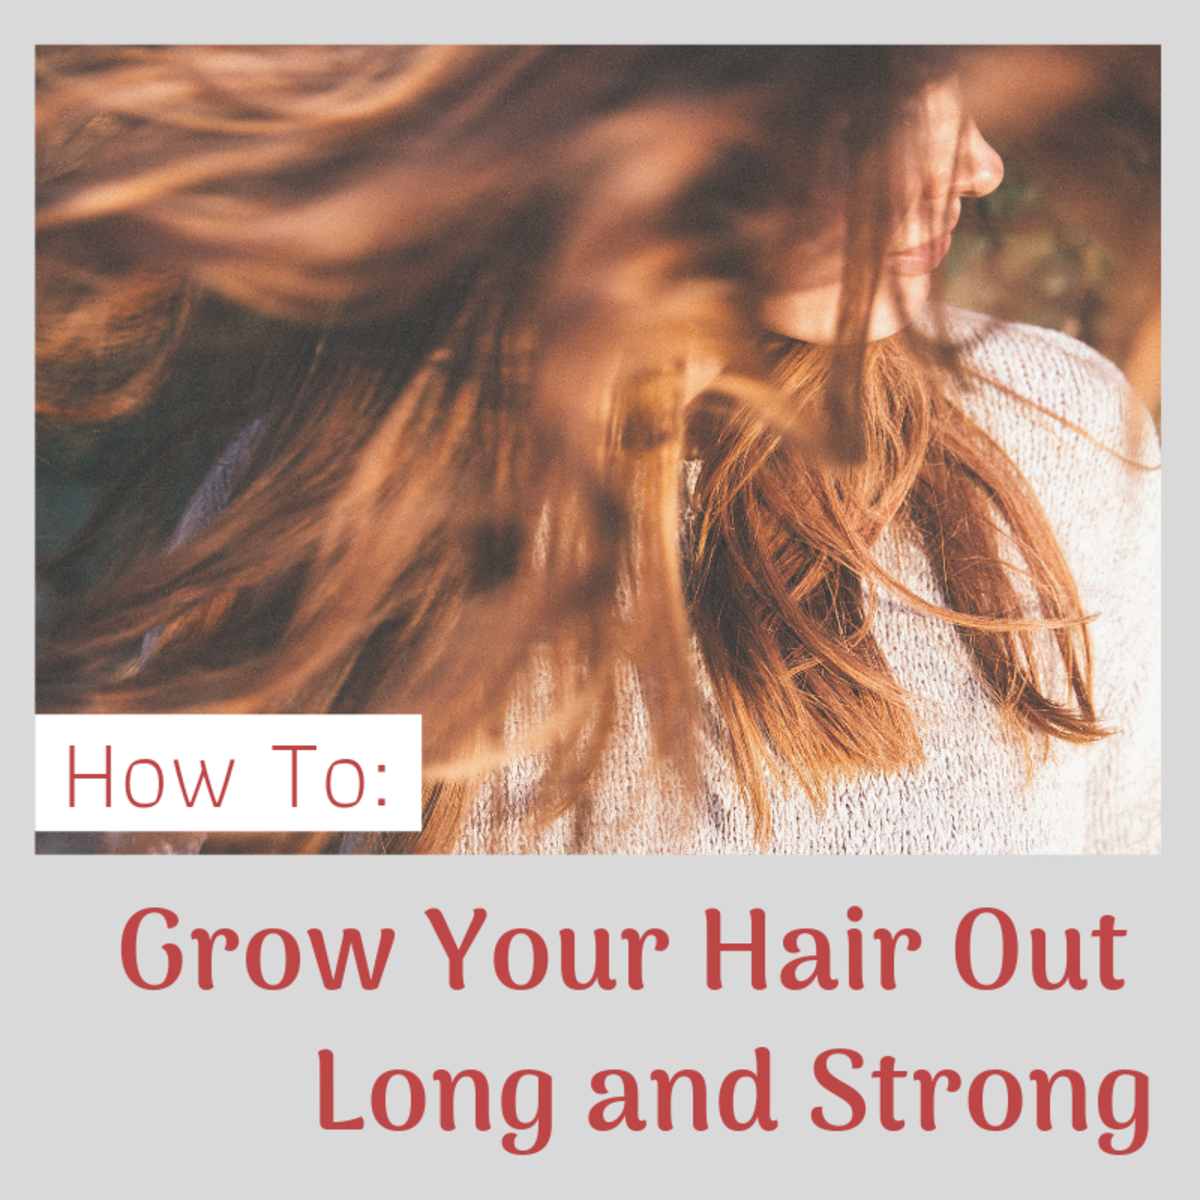 How to Grow Your Hair Out Long, Strong, and Healthy